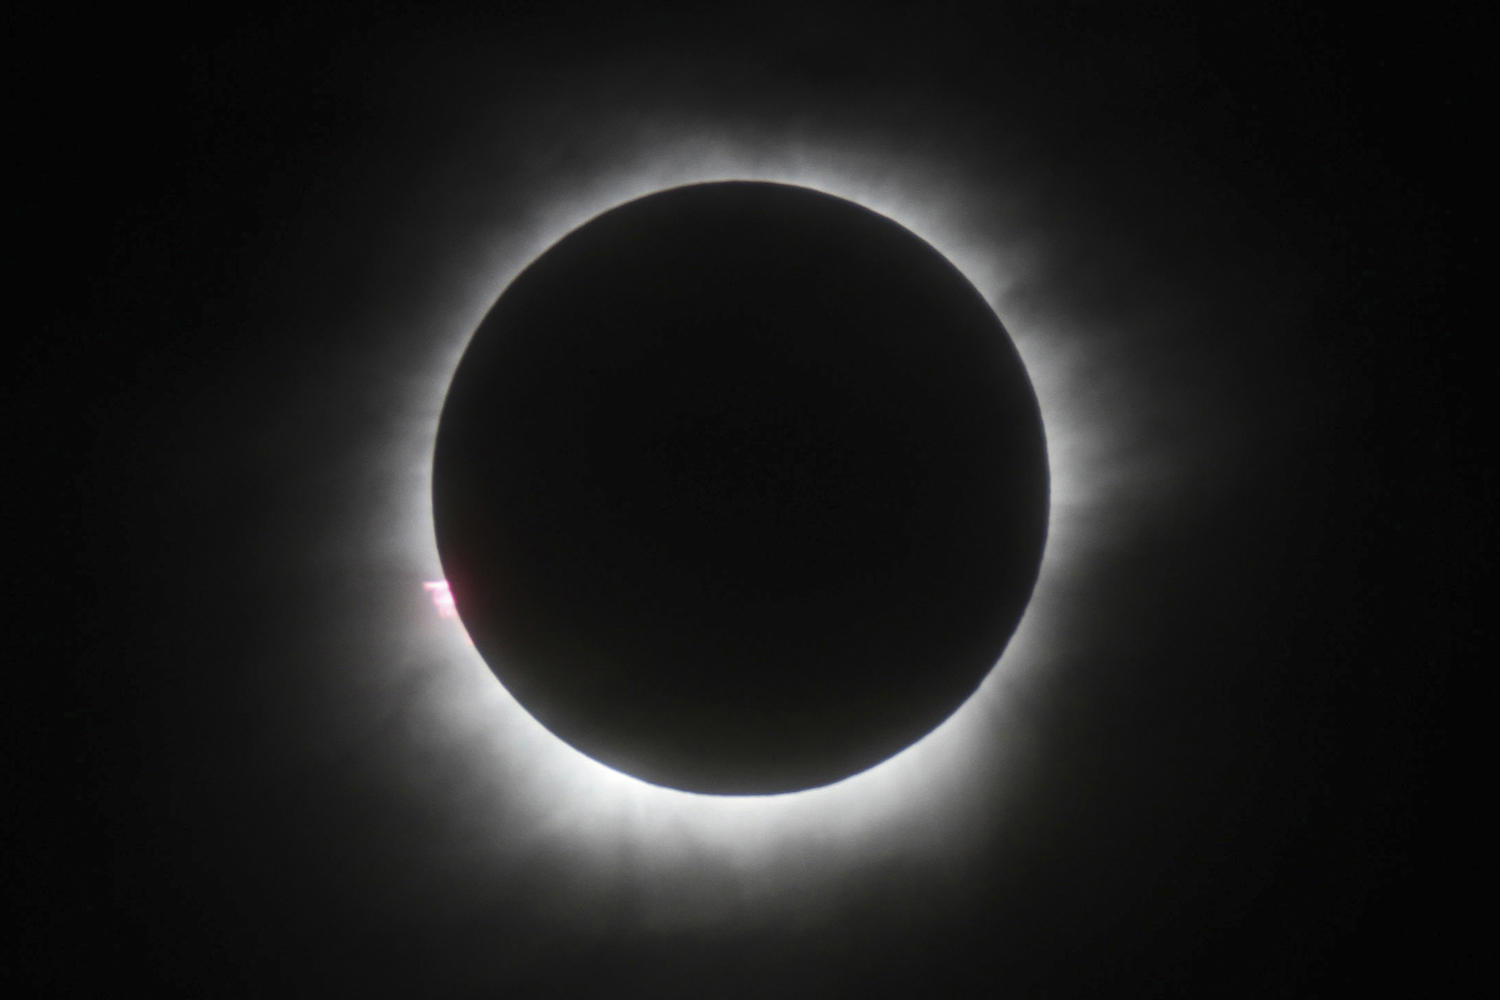 Take precautions for upcoming solar eclipse